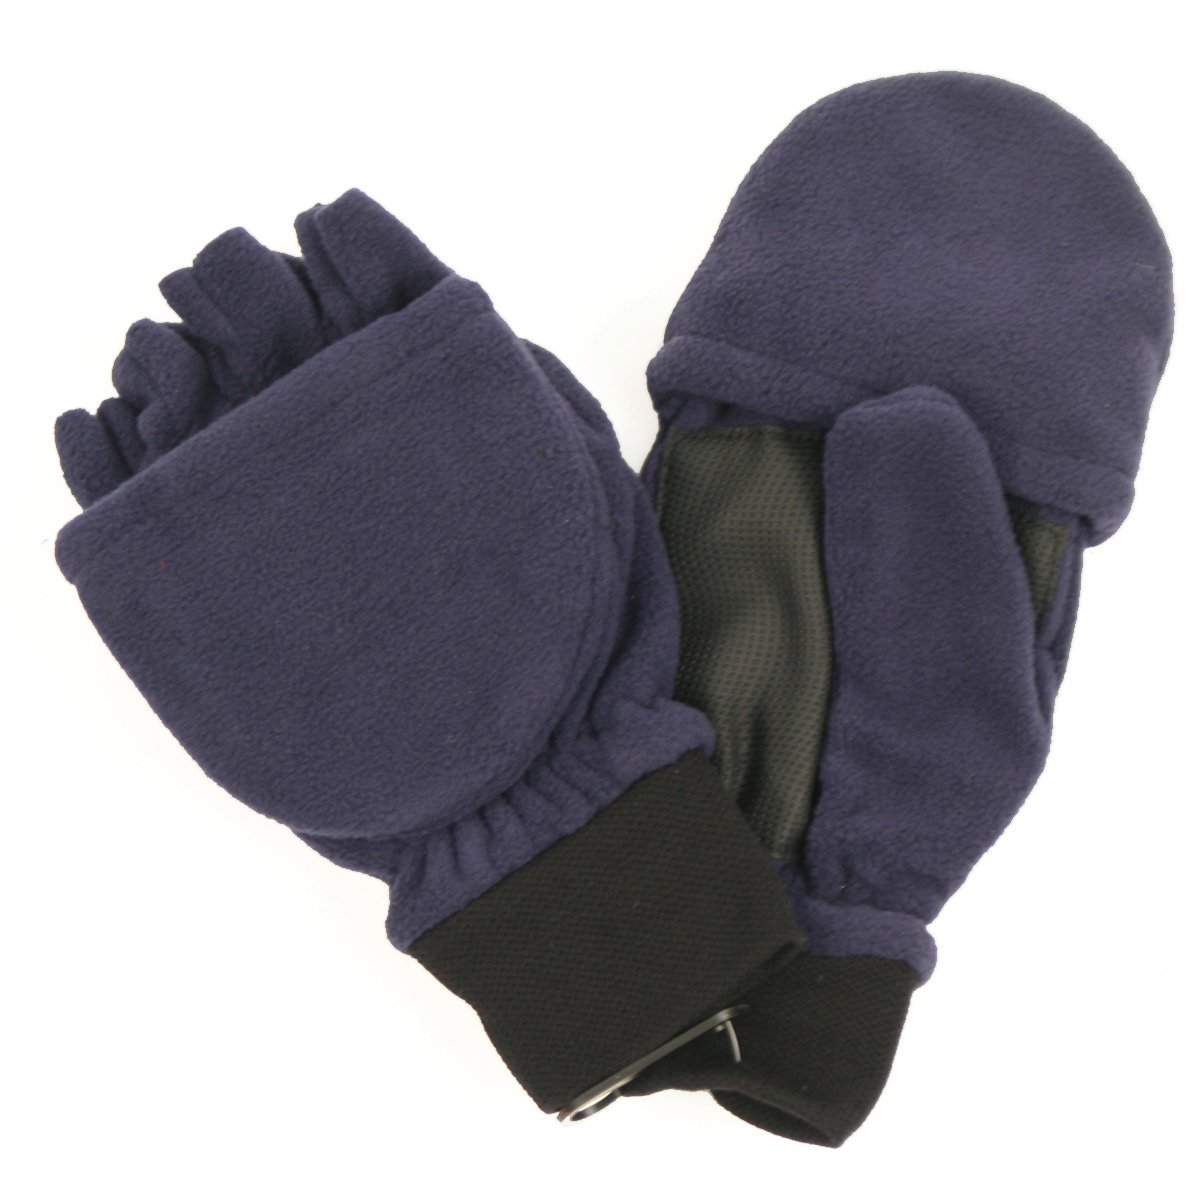 Knitting Pattern For Fold Over Mittens : fold-over mittens